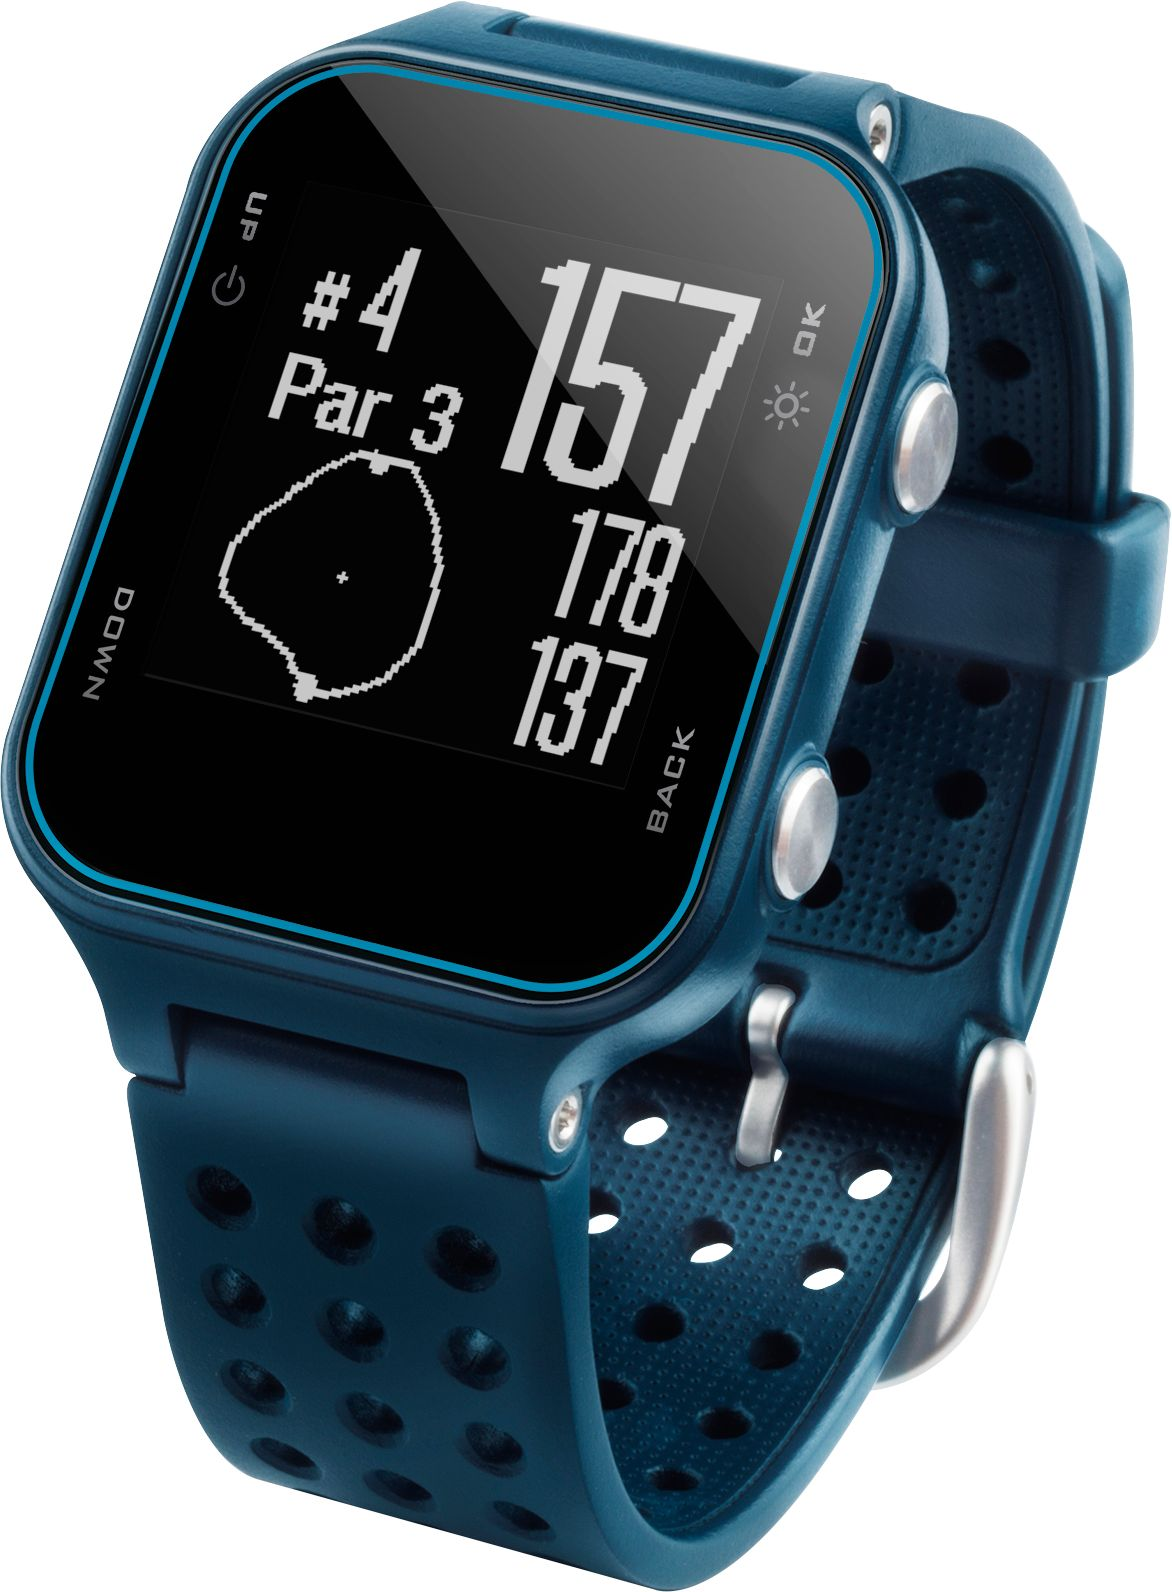 watches digital review watch garmin reviews gps trends gear health forerunner fitness